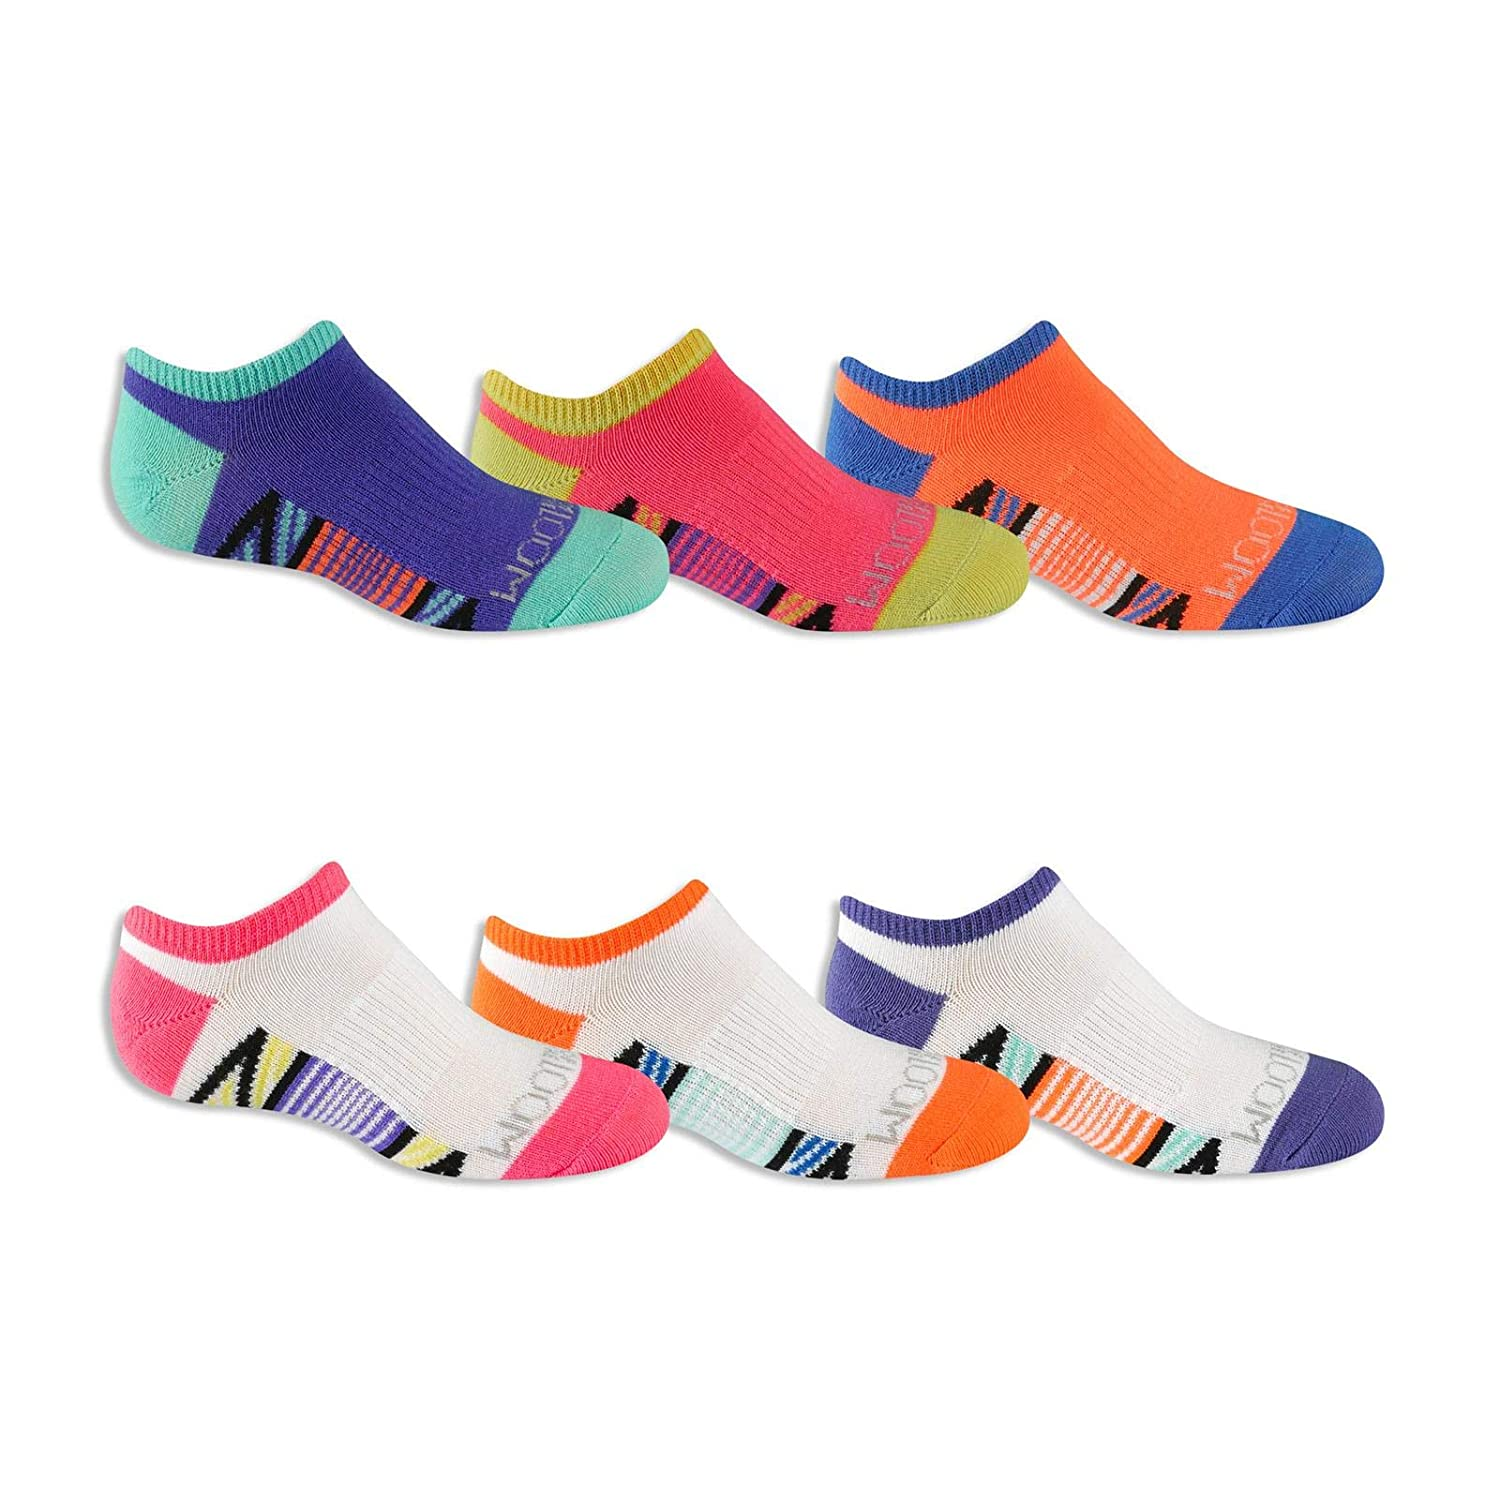 Fruit of the Loom Girls Big Everyday Active No Show Socks with Arch Support 6 Pair